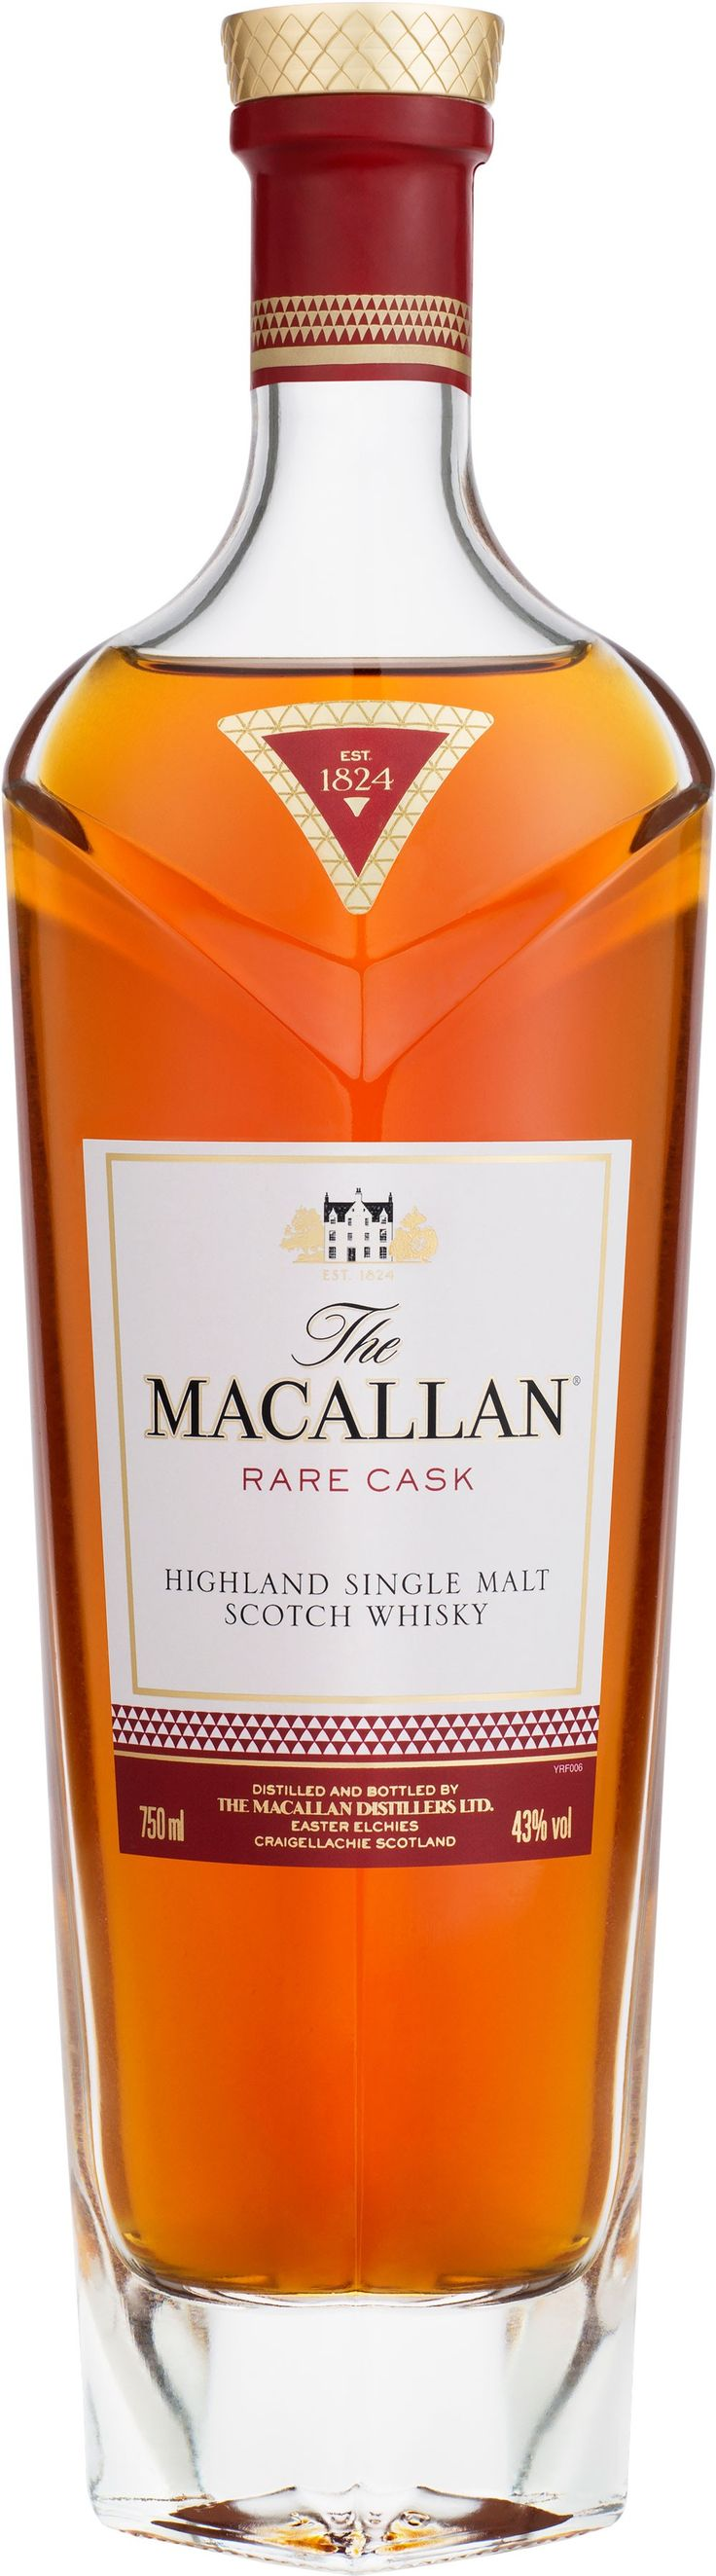 The newest addition to Macallan's 1824 Masters Series, this whisky was crafted from casks hand-selected by Macallan's #whisky maker. #liquor